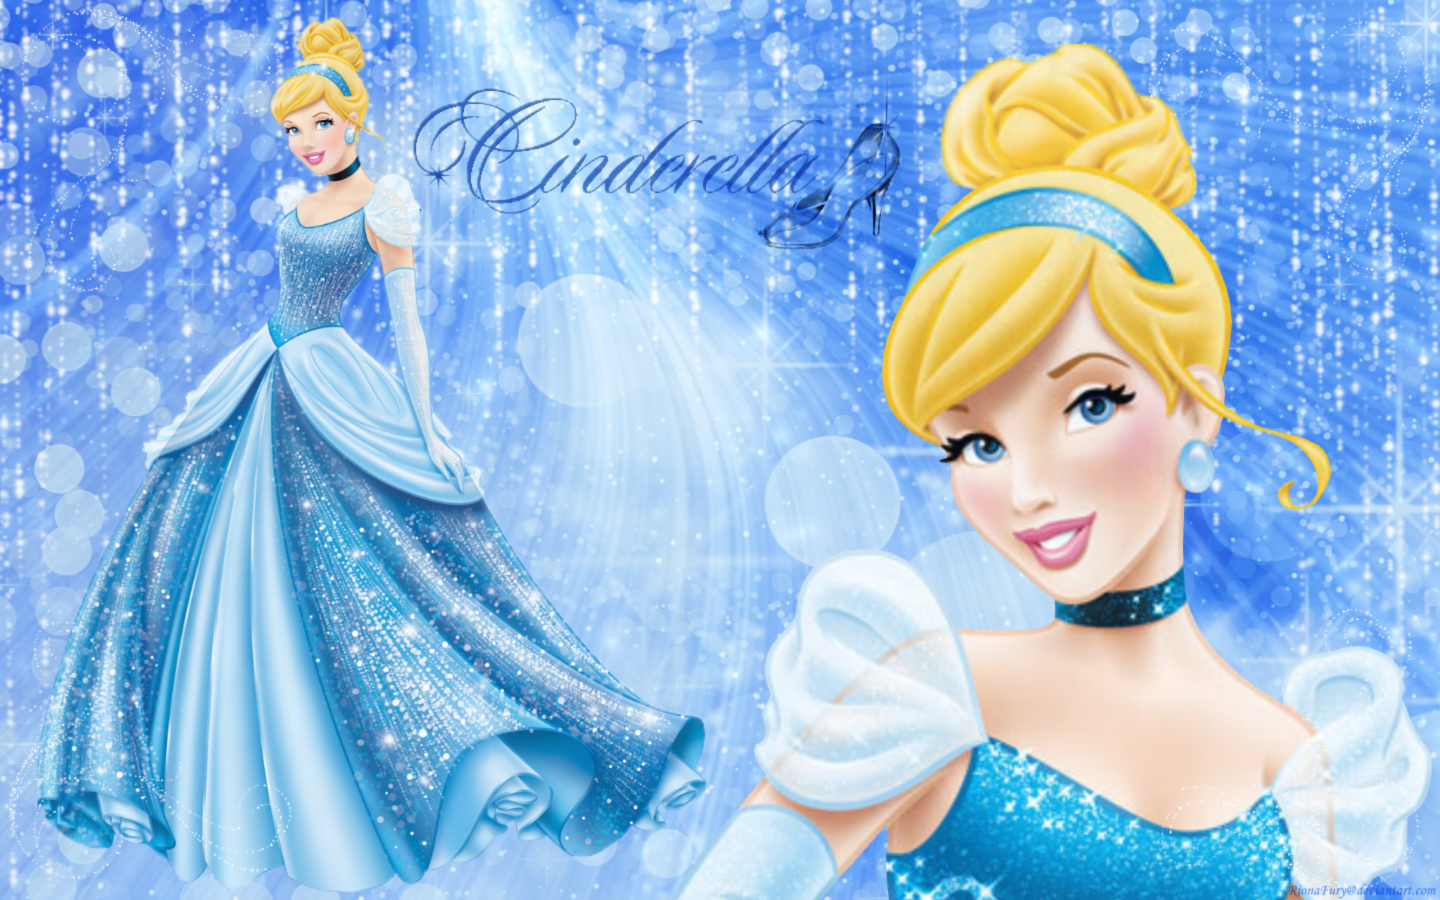 Disney Princess 1440x900